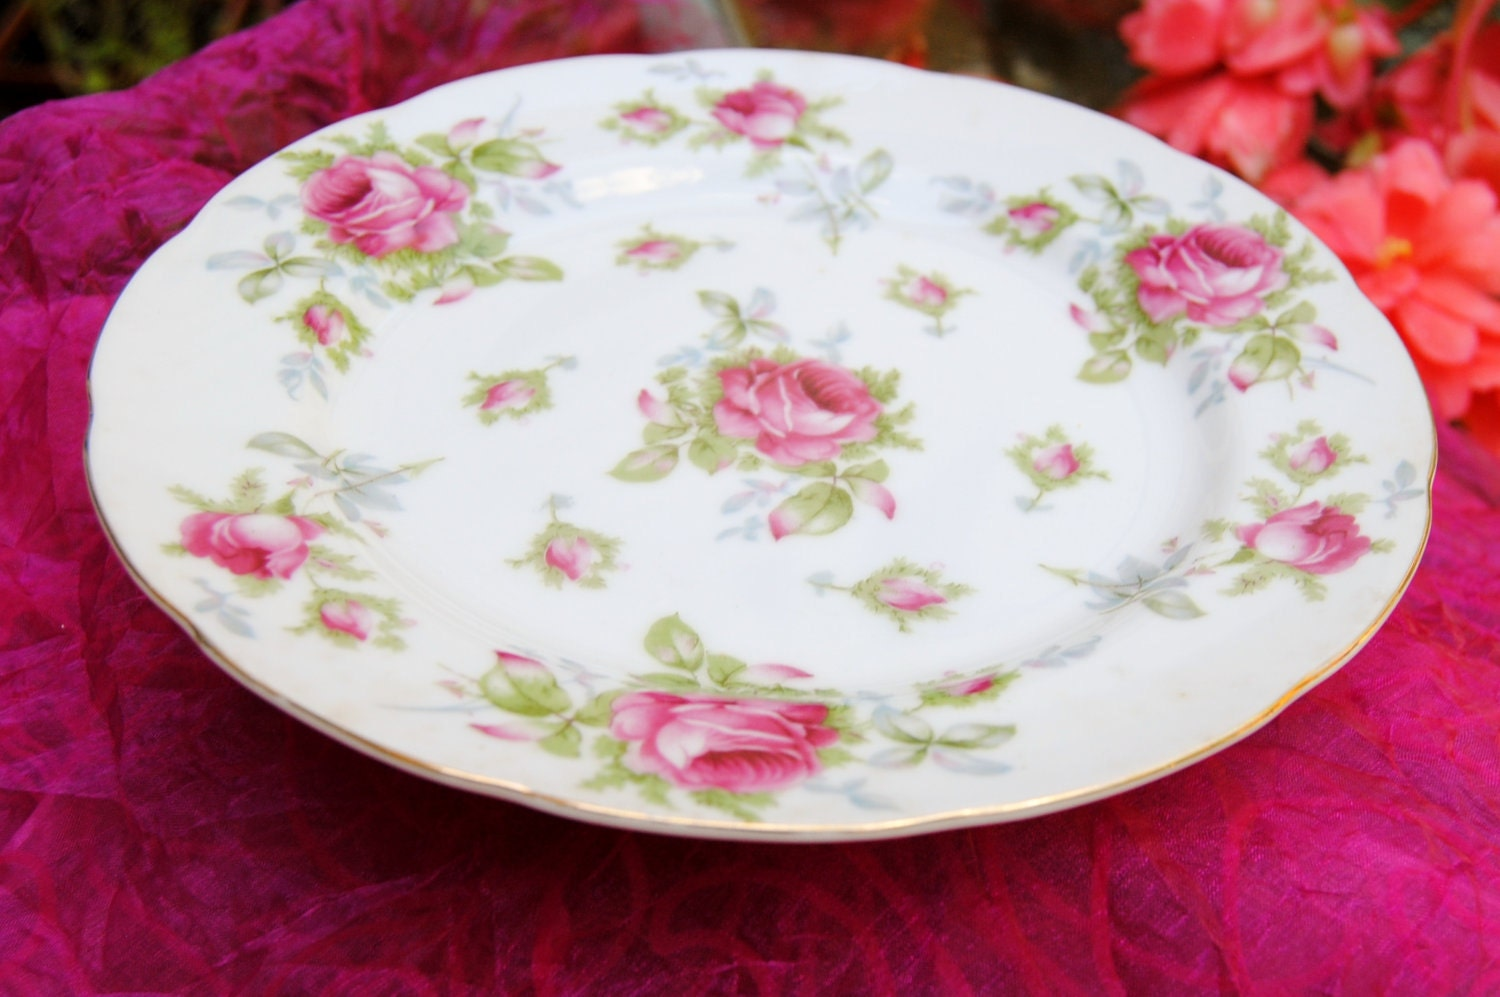 Vintage Lefton China Plate Pink Roses Hand Painted